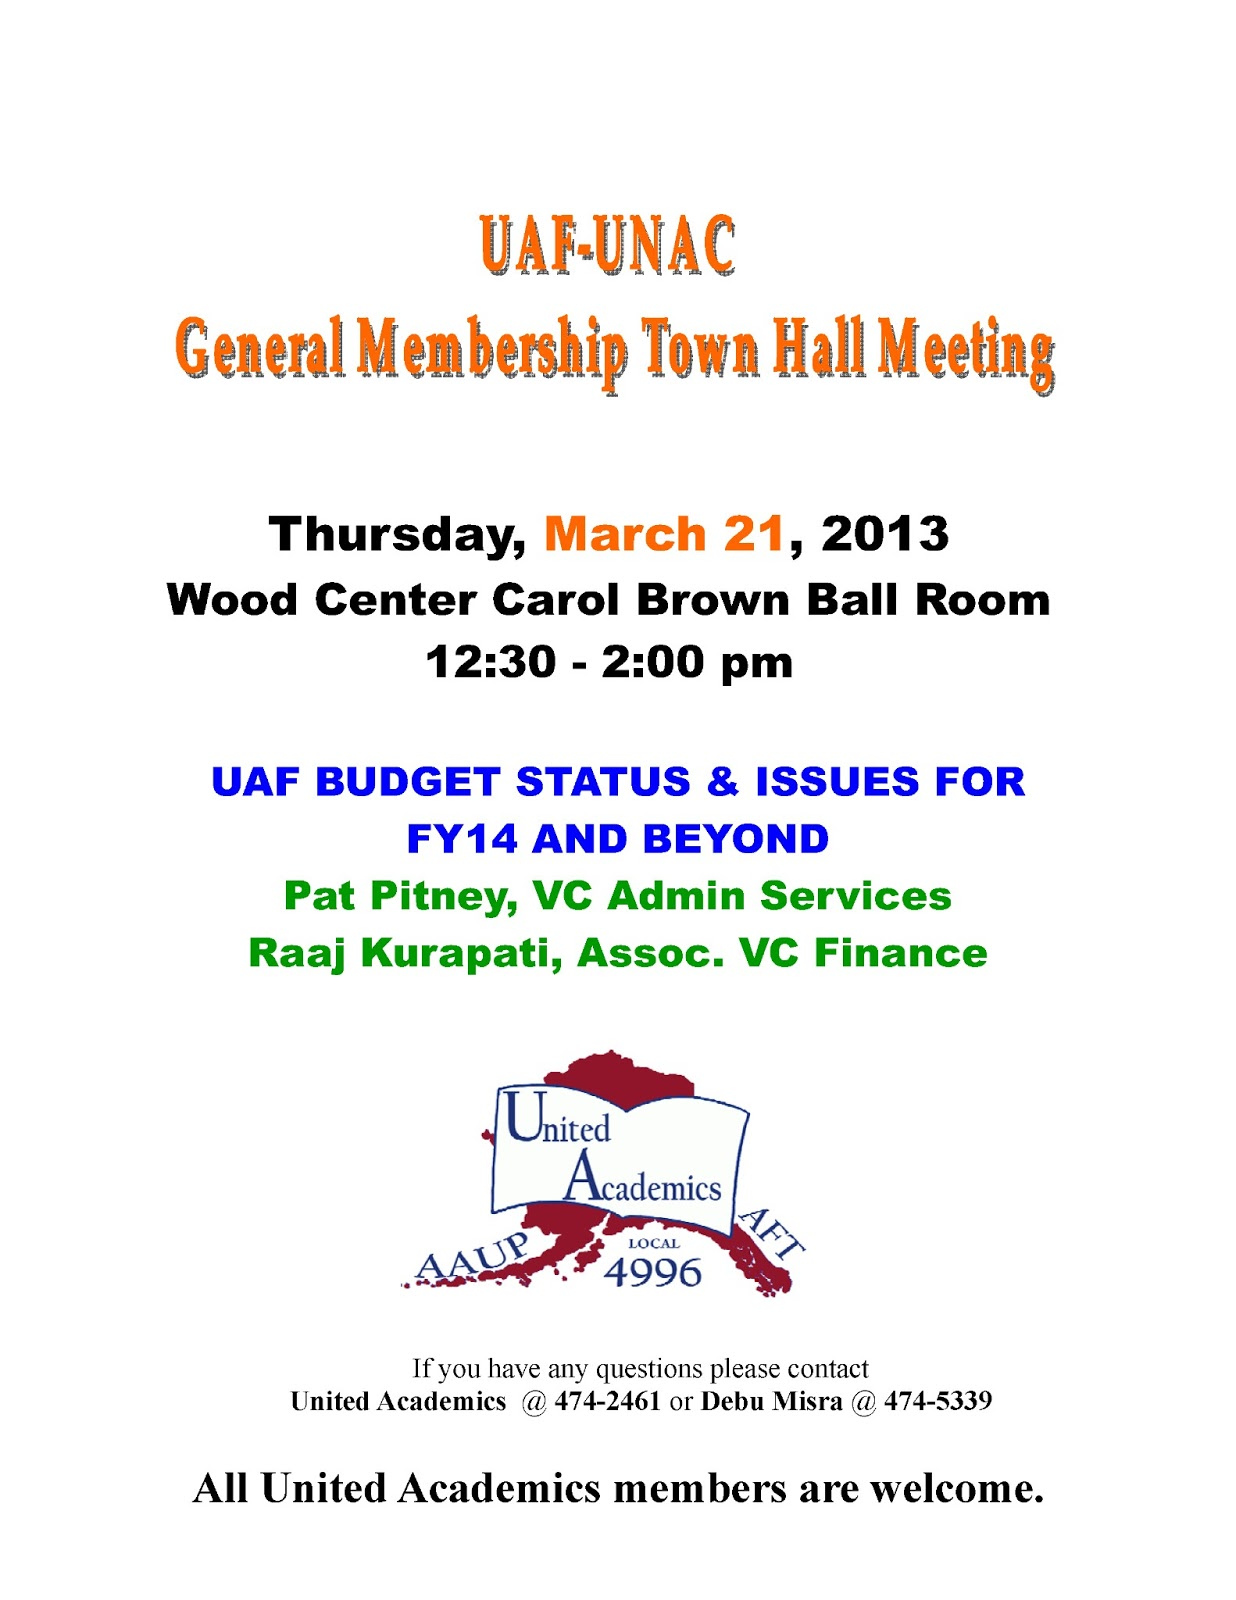 Uaf Staff Council Blog Staff Invitation To Upcoming Uaf Unac